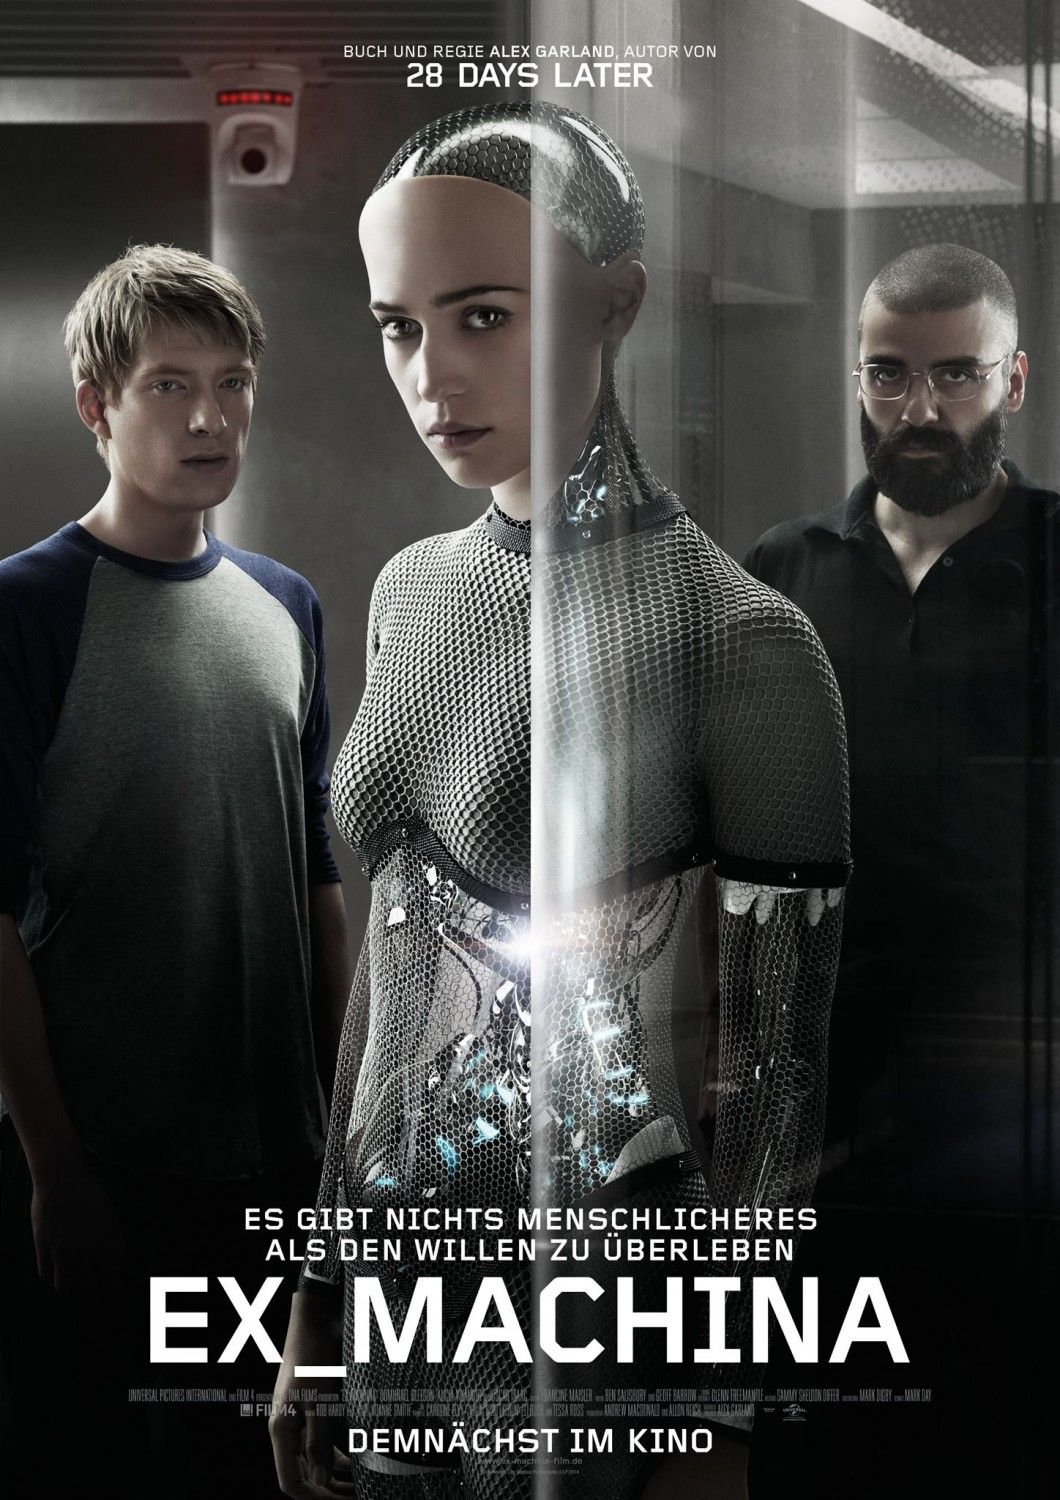 Ex Machina Extra Large Movie Poster Image Internet Movie Poster Awards Gallery Ex Machina Movie Movie Posters Movies Online